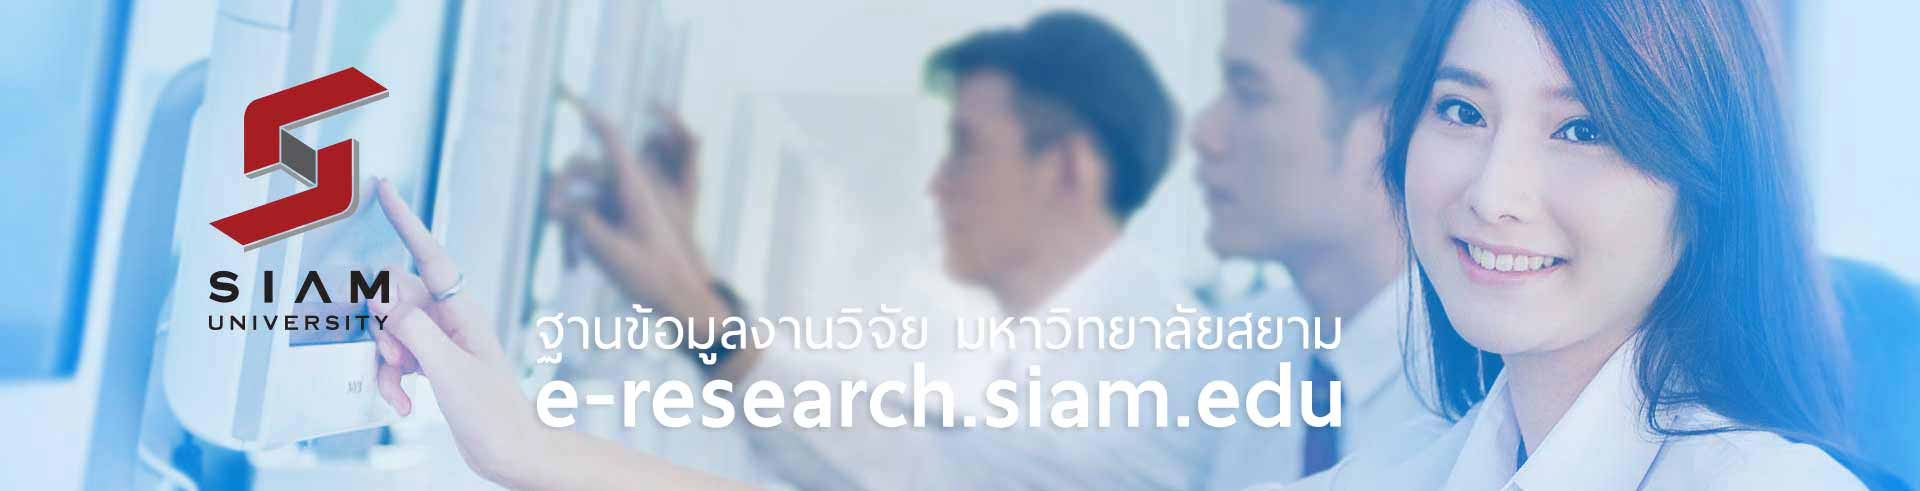 Factors Affecting Decision Making to Study Massive online open Course (MOOC) for Bachelor Degrees in Bangkok - ฐานข้อมูลงานวิจัย มหาวิทยาลัยสยาม